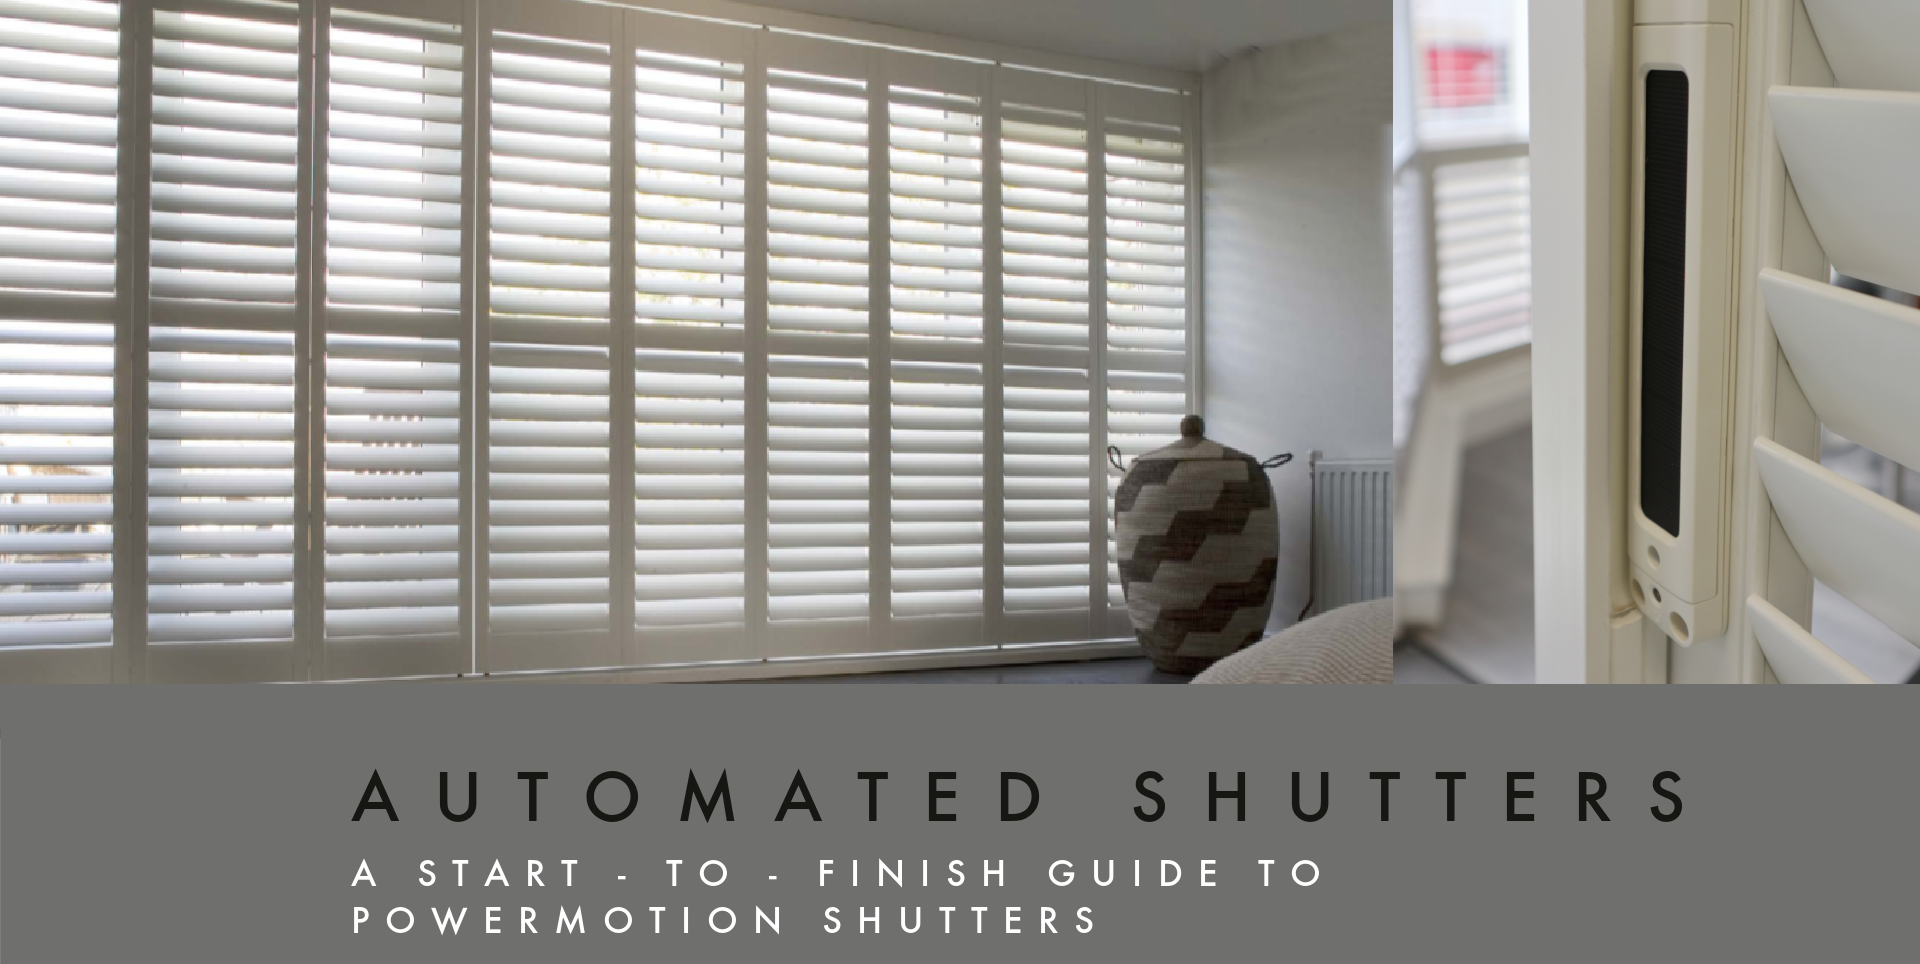 Automated Shutters solar power battery guide